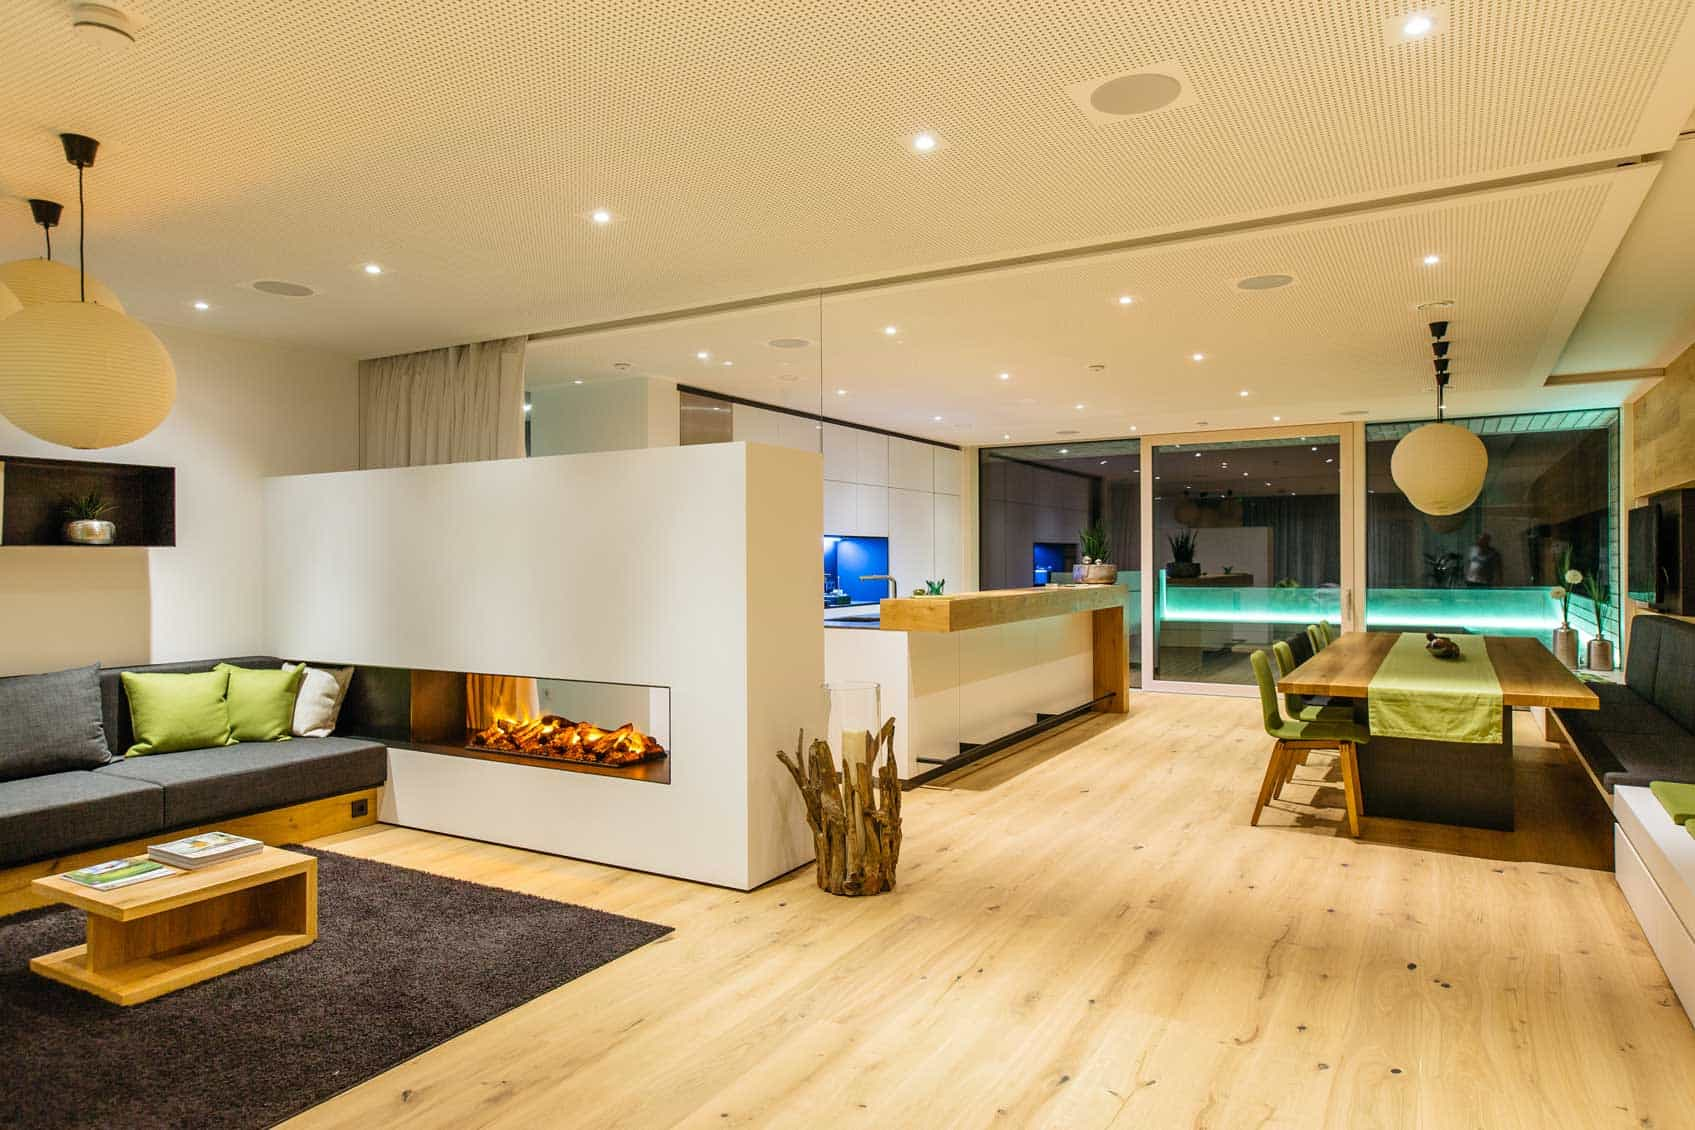 a well lit indoor space